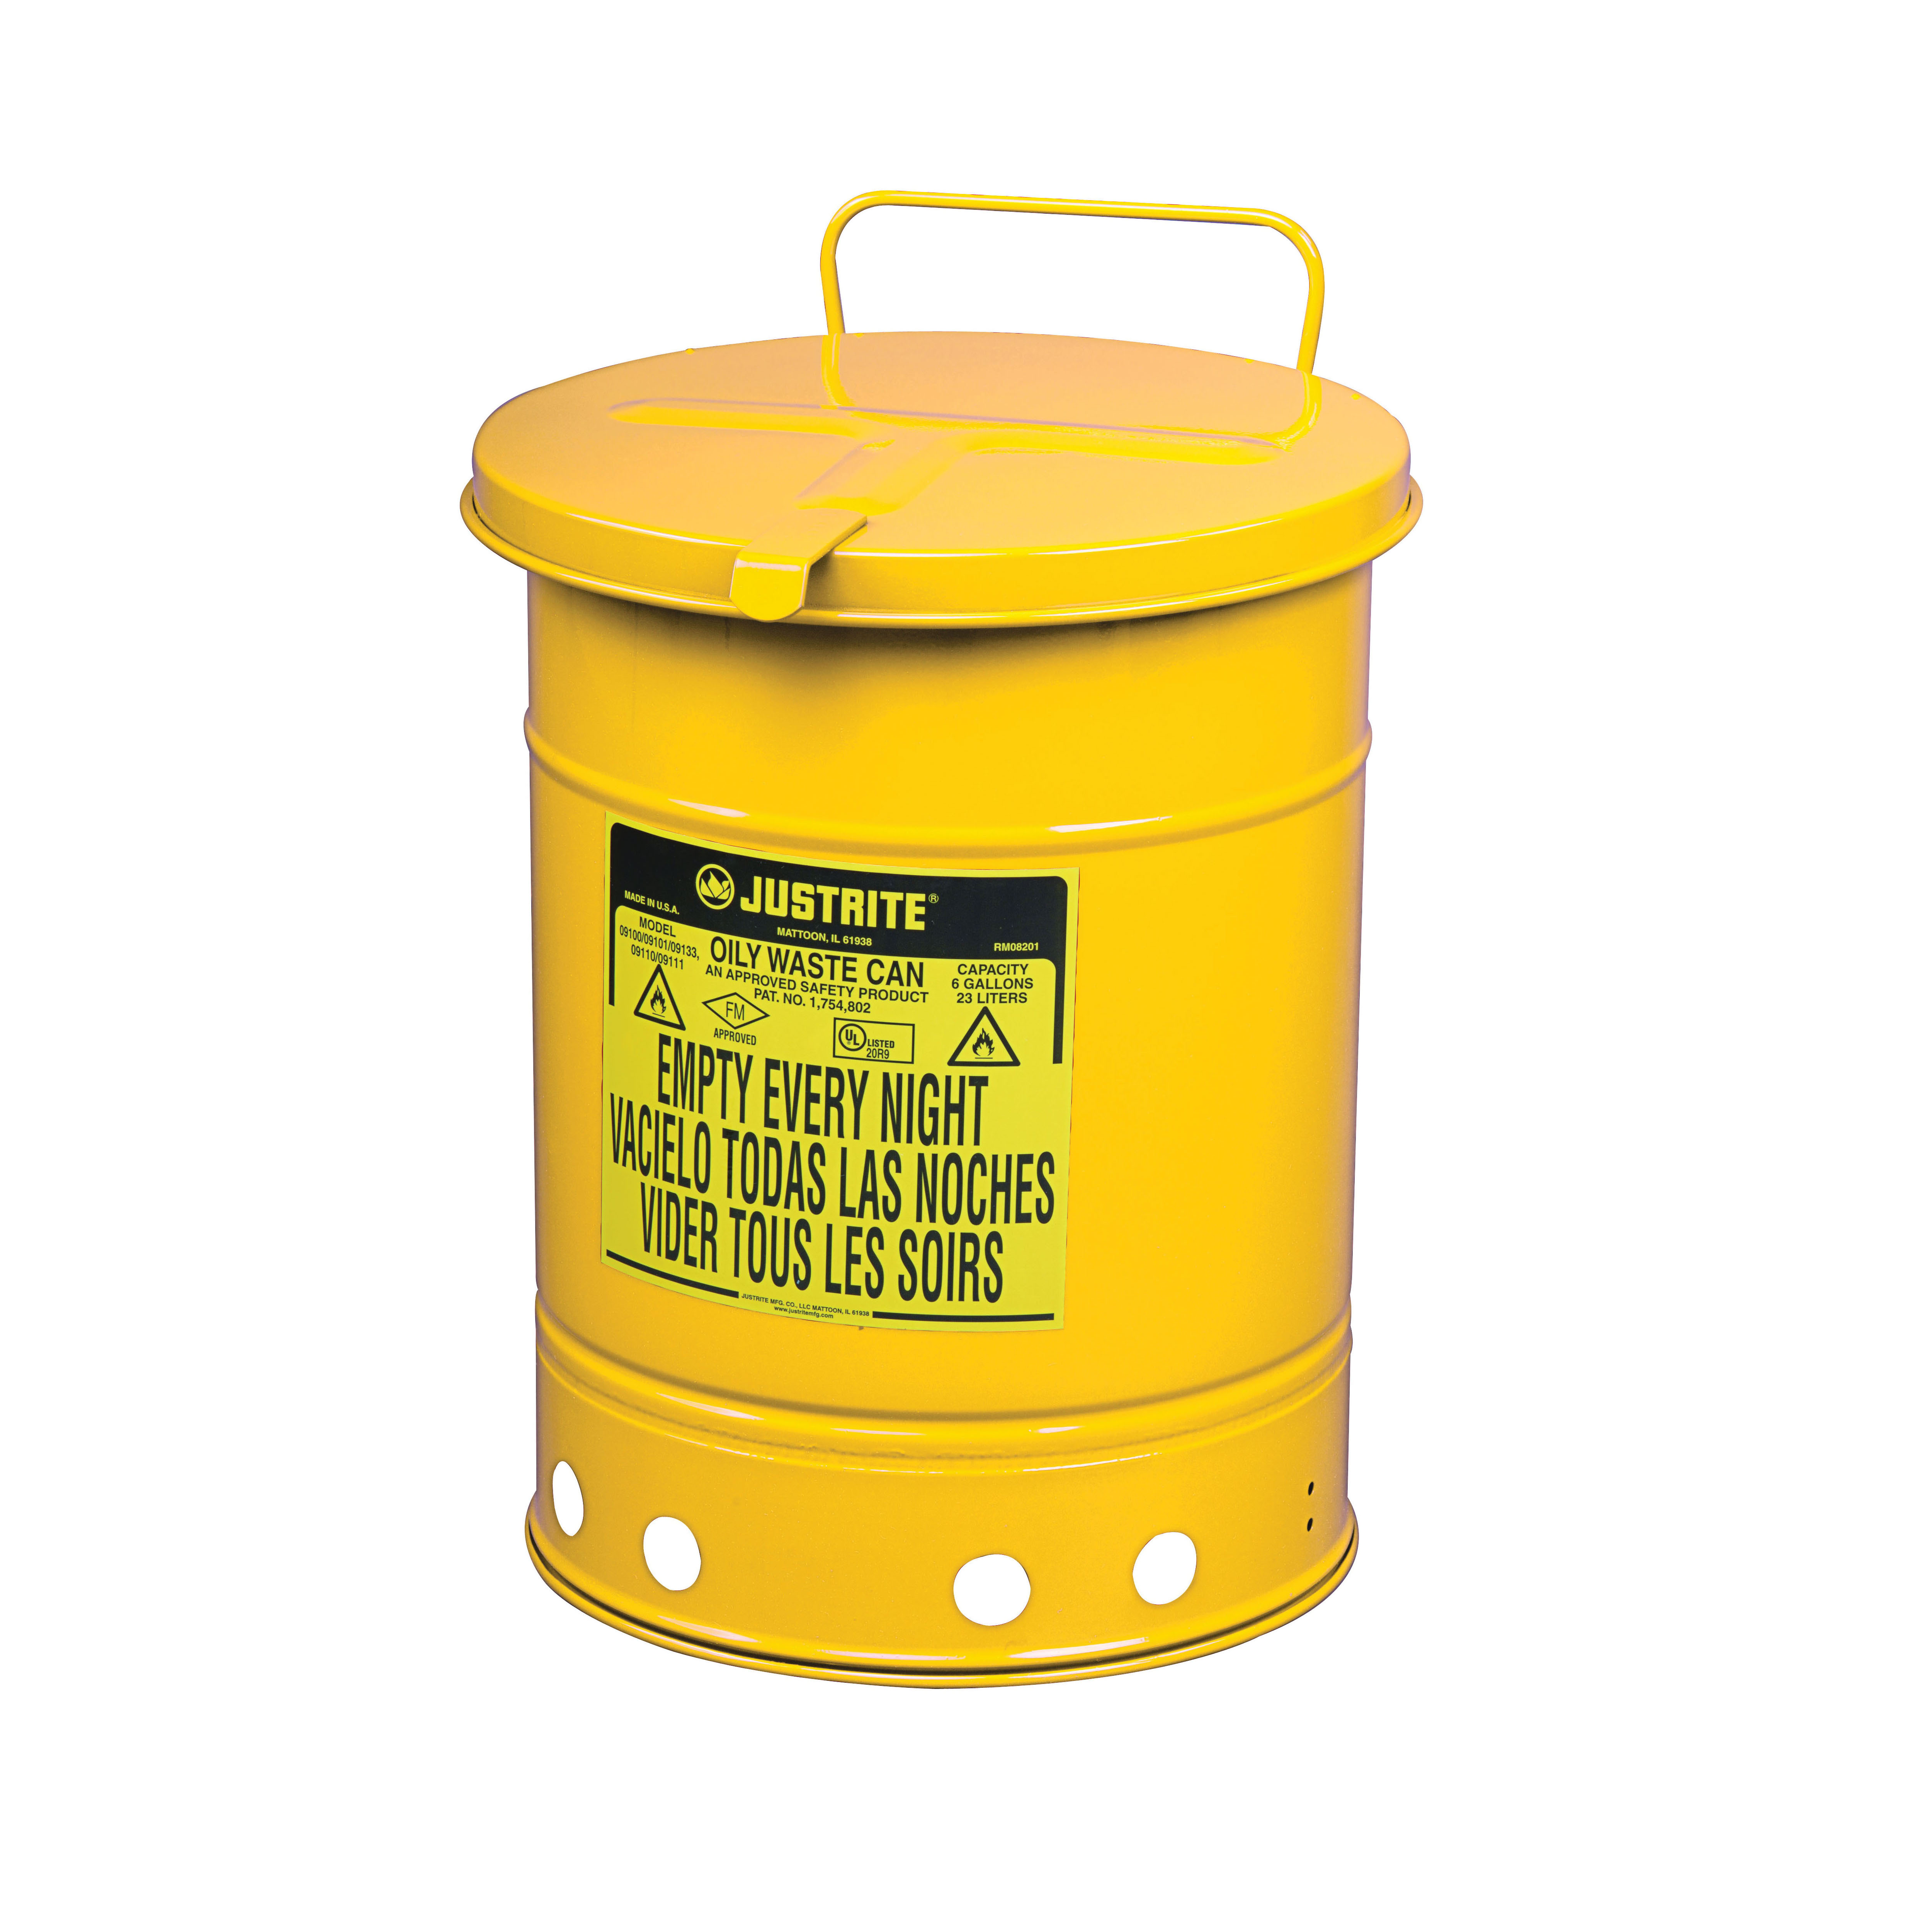 Justrite® 09511 Hand Operated Oily Waste Can, 14 gal Capacity, 16.063 in Dia x 20-1/4 in H, Steel, Yellow